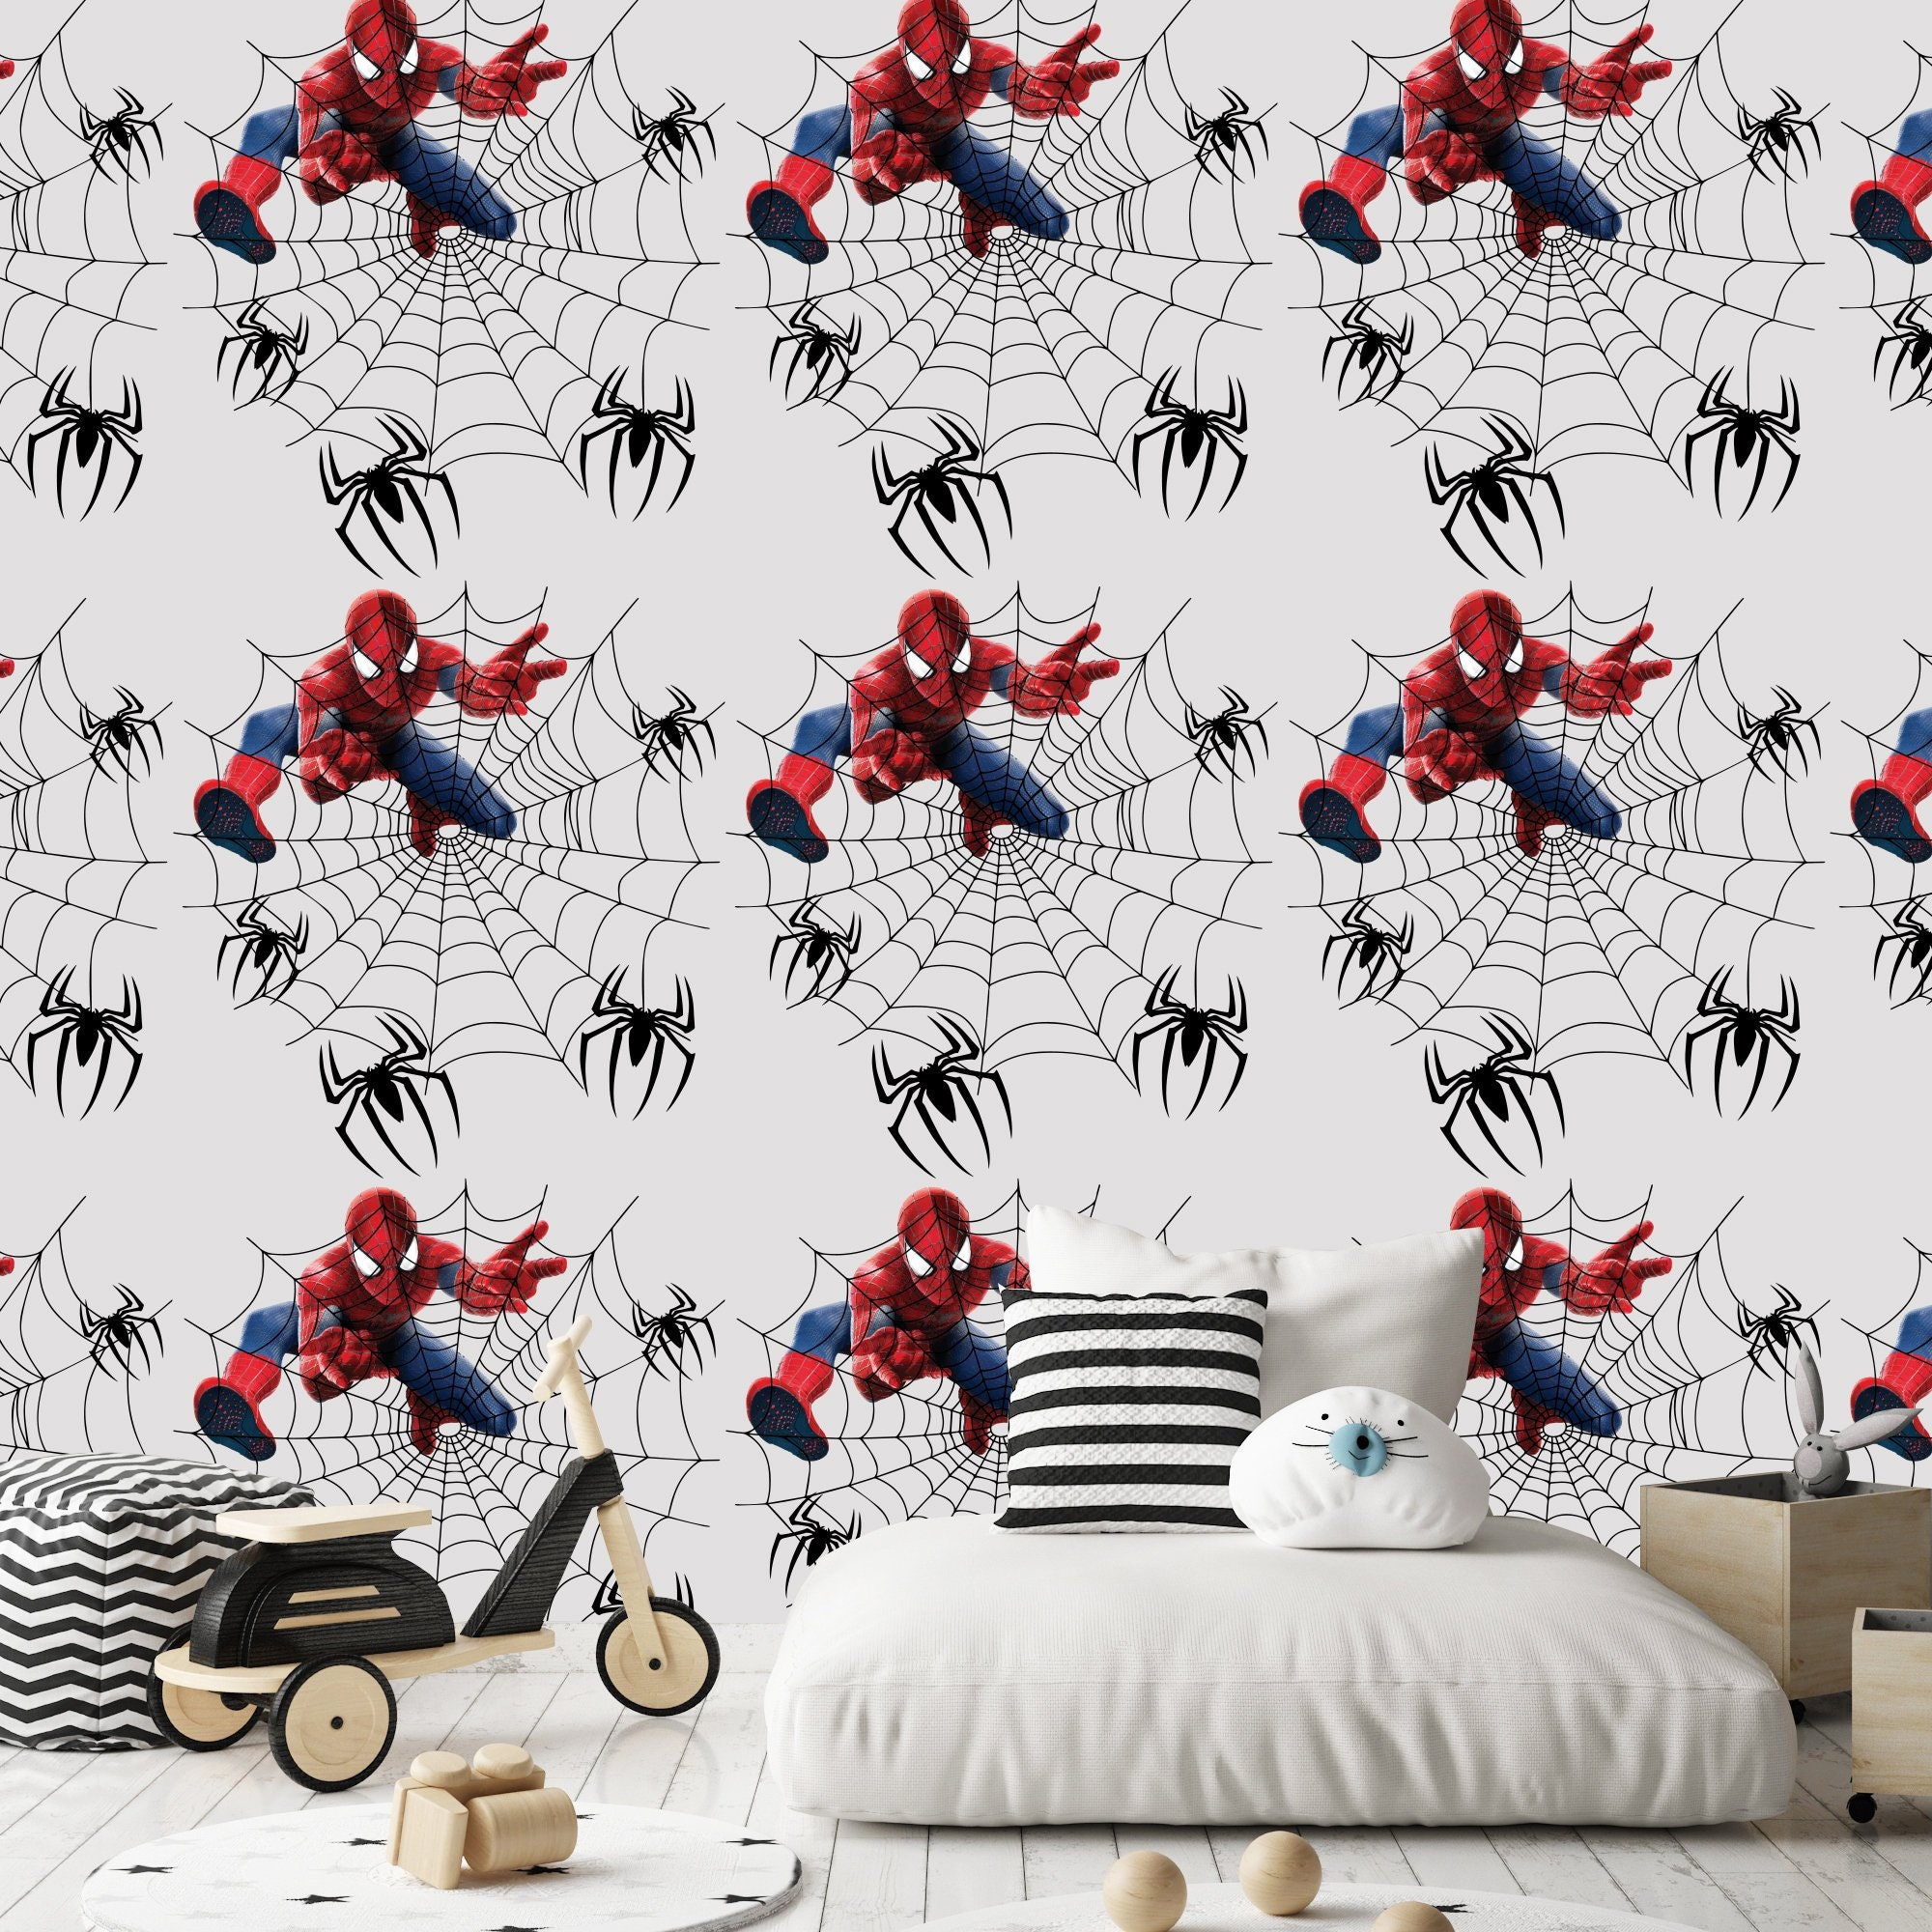 Removable Wallpaper Nursery Boy Spiderman Wallpaper Boys Room Spiderman Wallpaper Spiderman Nursery Decor Marvel Wall Decal Kids M6